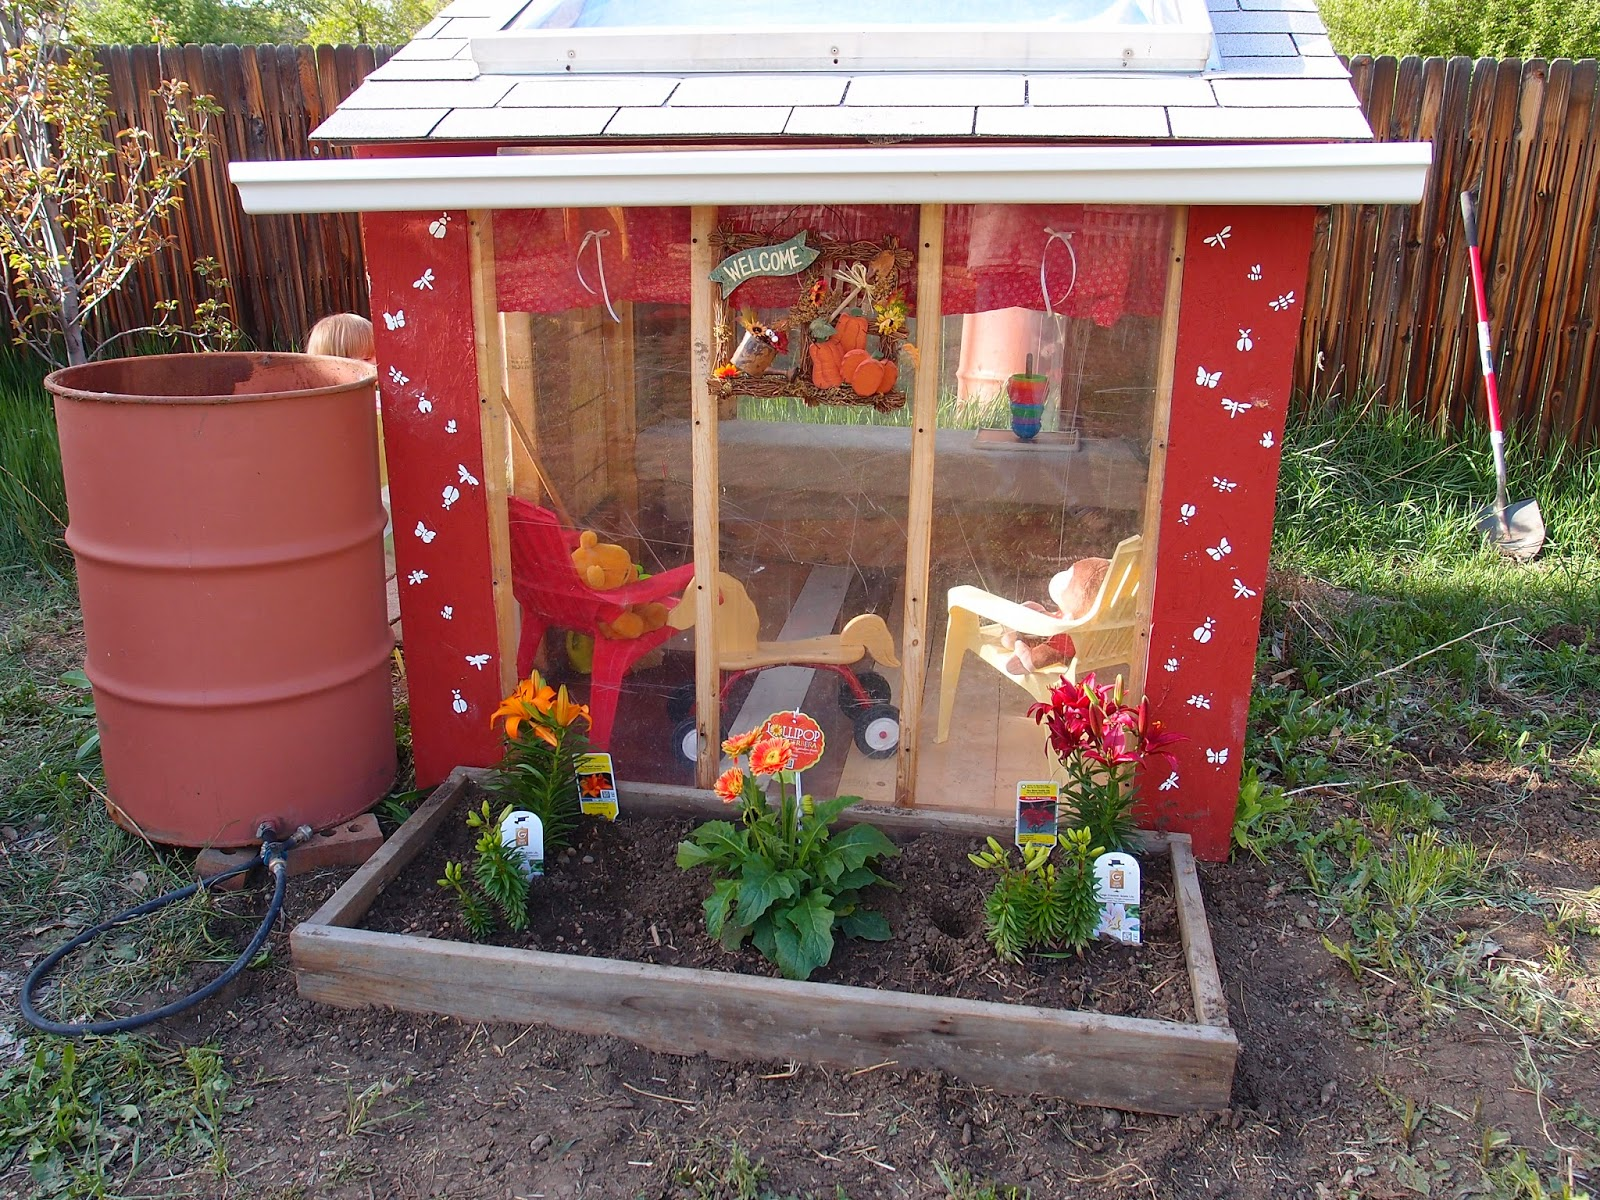 the treehouser converting a chicken coop into a playhouse